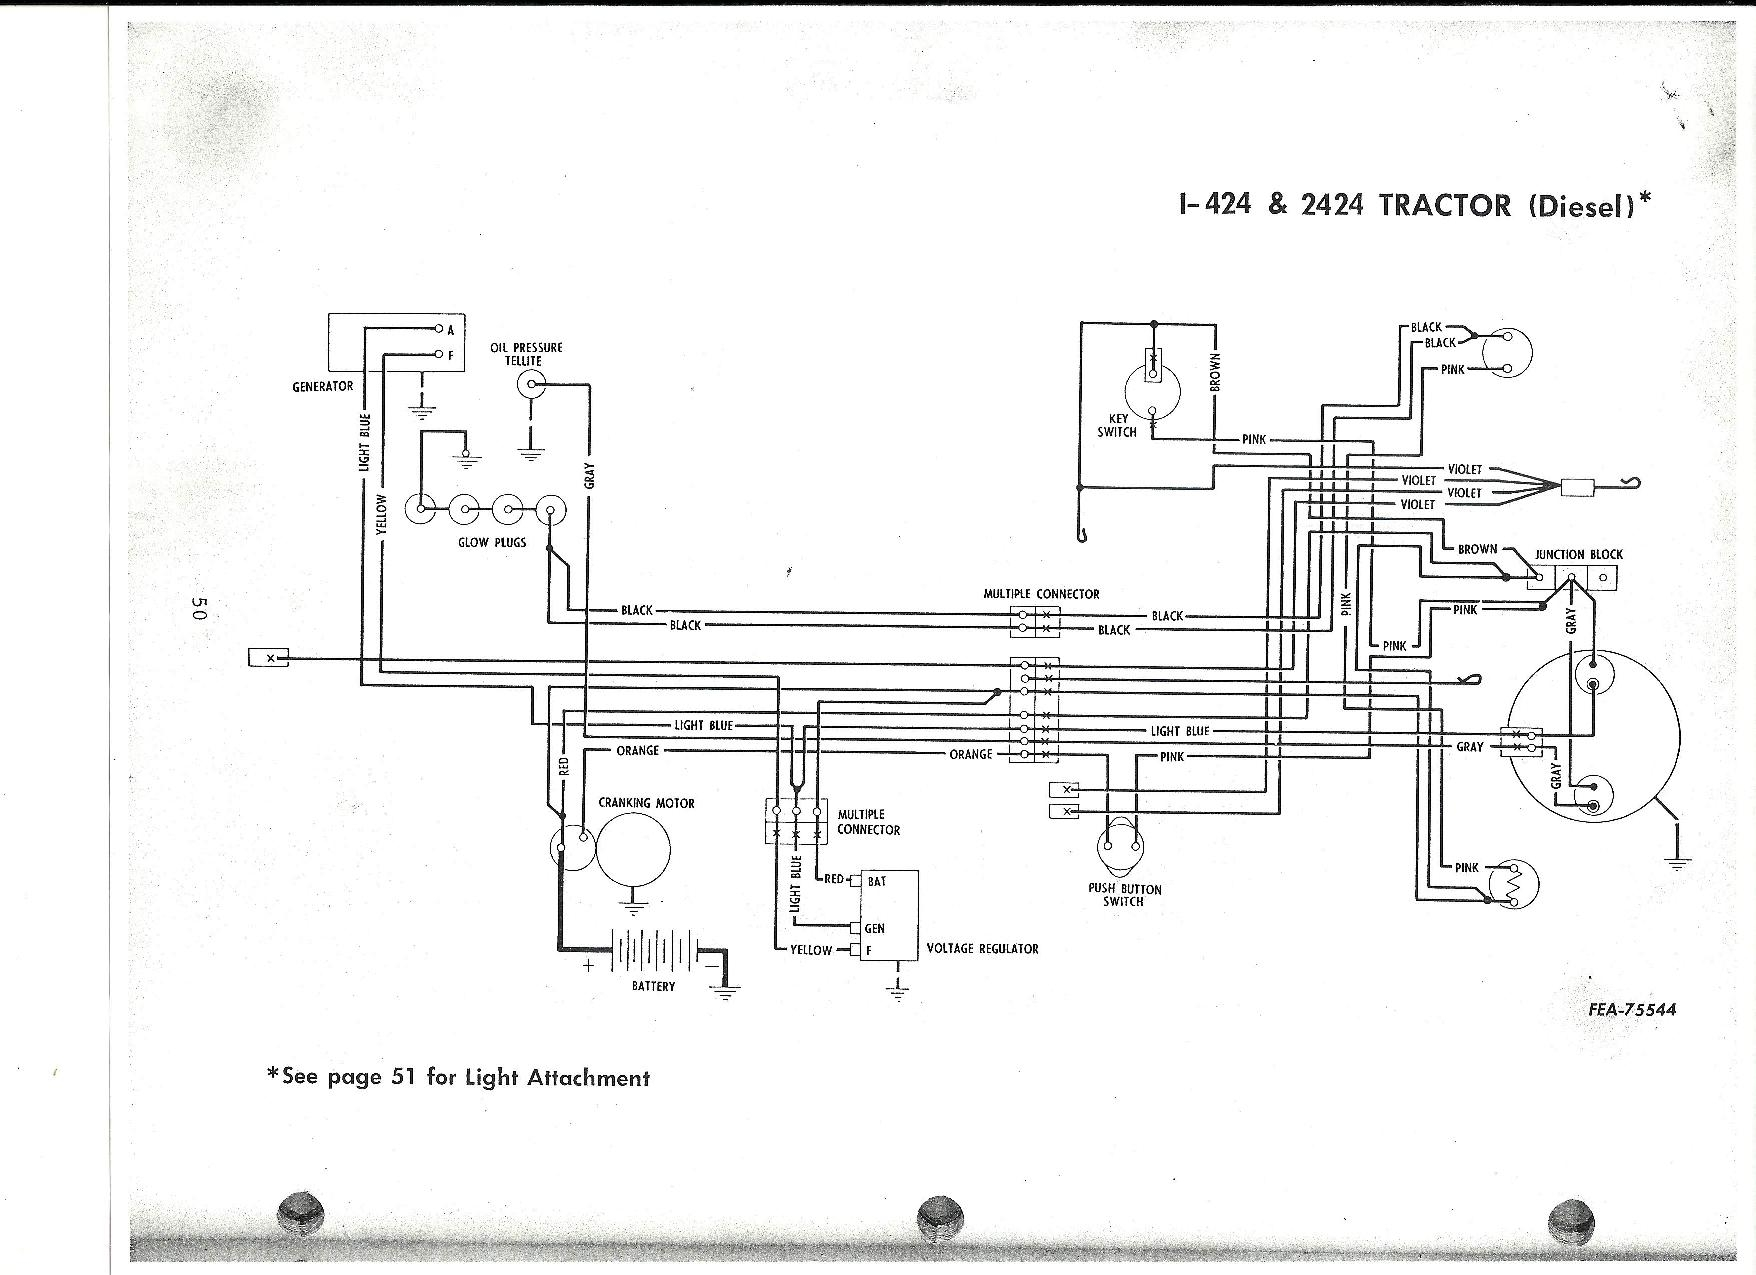 on case ih 485 tractor wiring chart -chevrolet plug wiring | begeboy wiring  diagram source  begeboy wiring diagram source